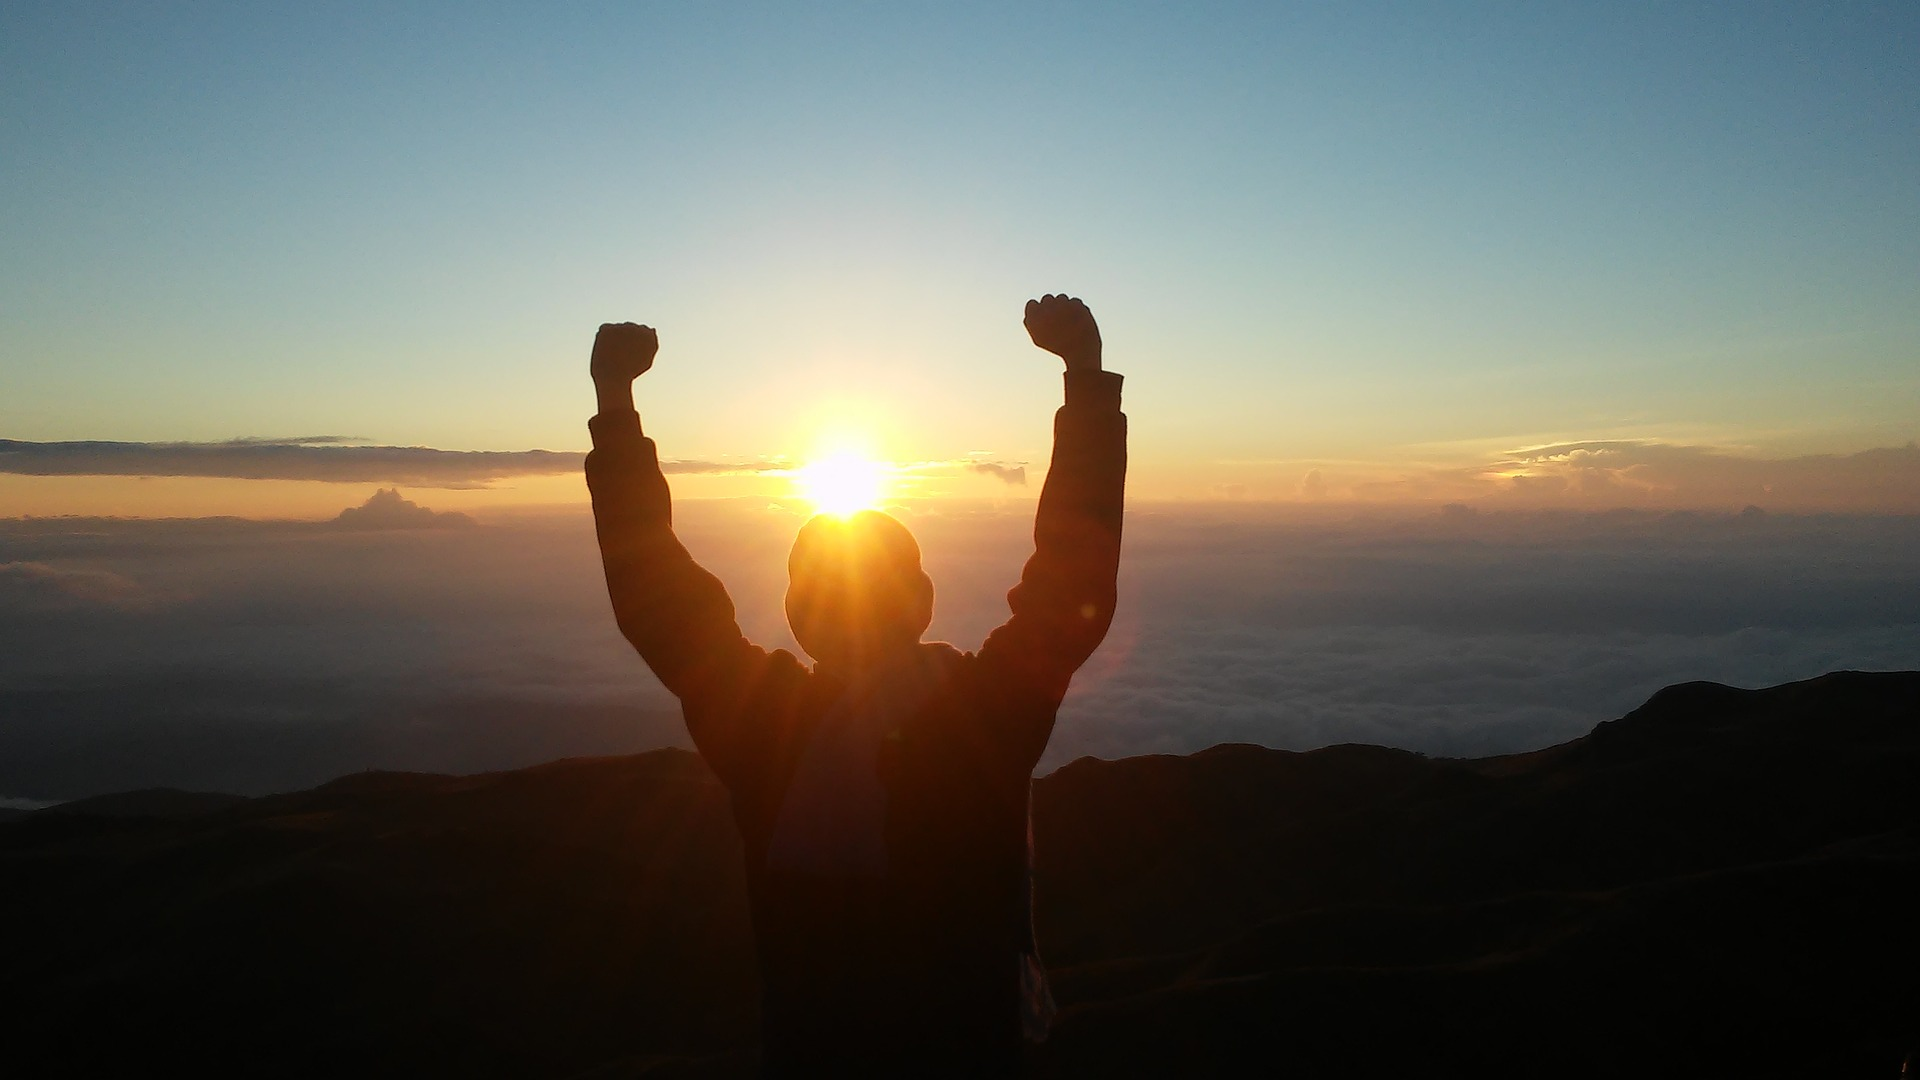 Man raising arms for victory looking over large landscape